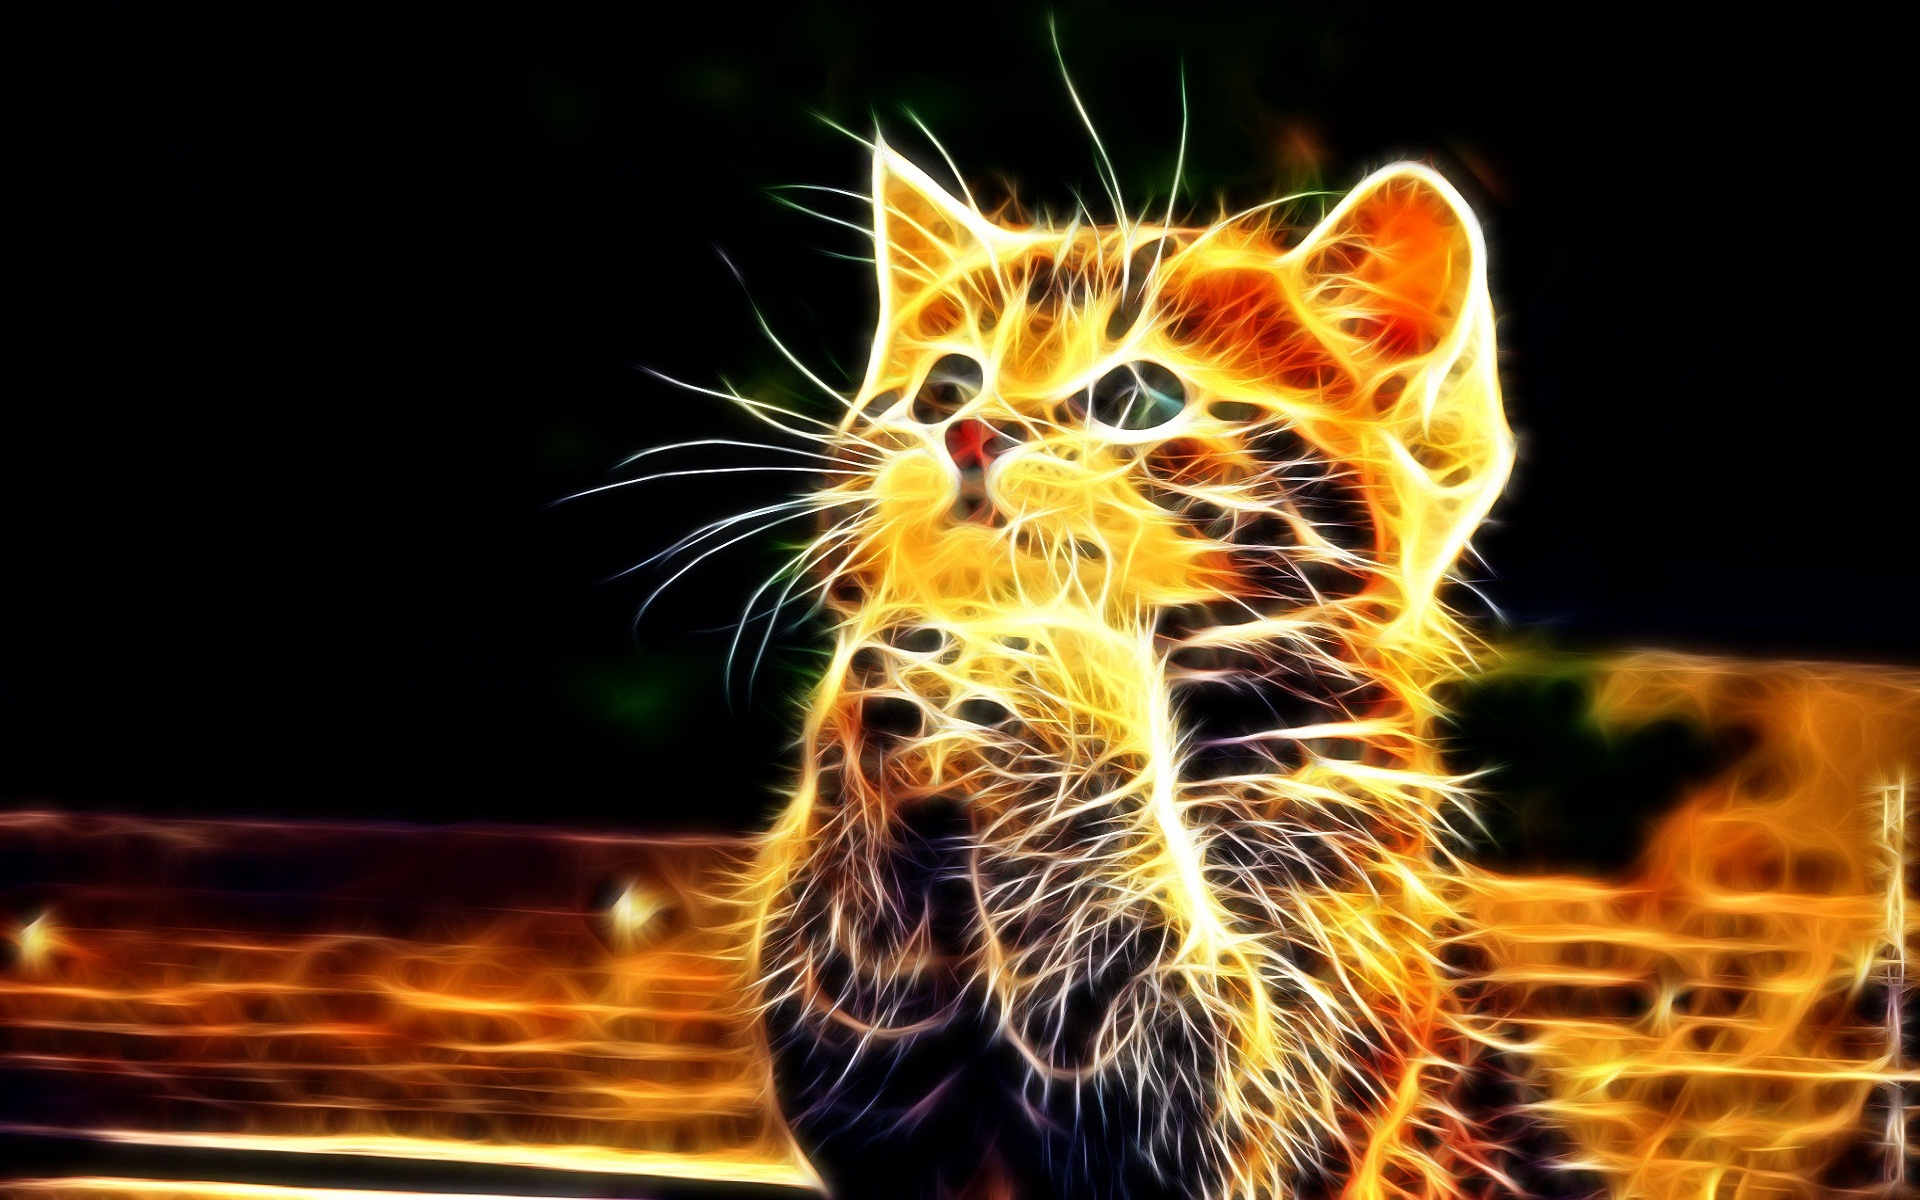 Flame cat join hands prayer HD Wallpapers Rocks 1920x1200